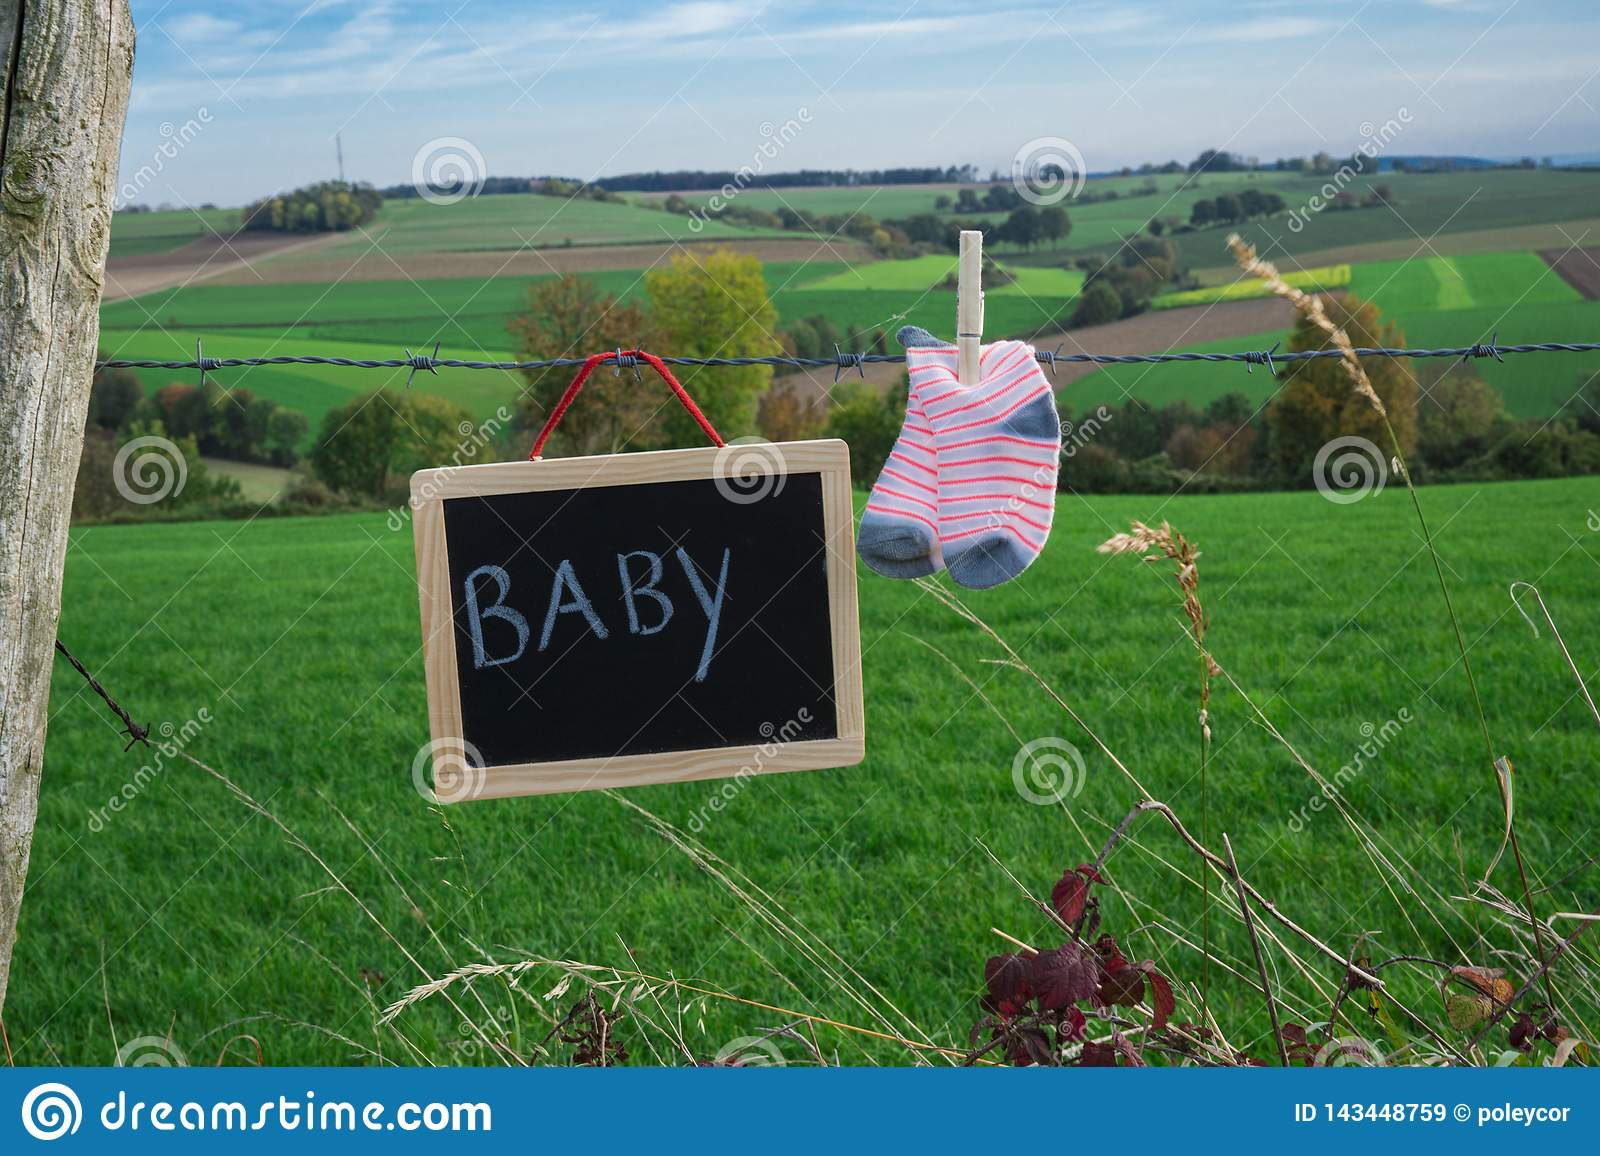 Baby socks and chalkboard on barbed wire against green landscape